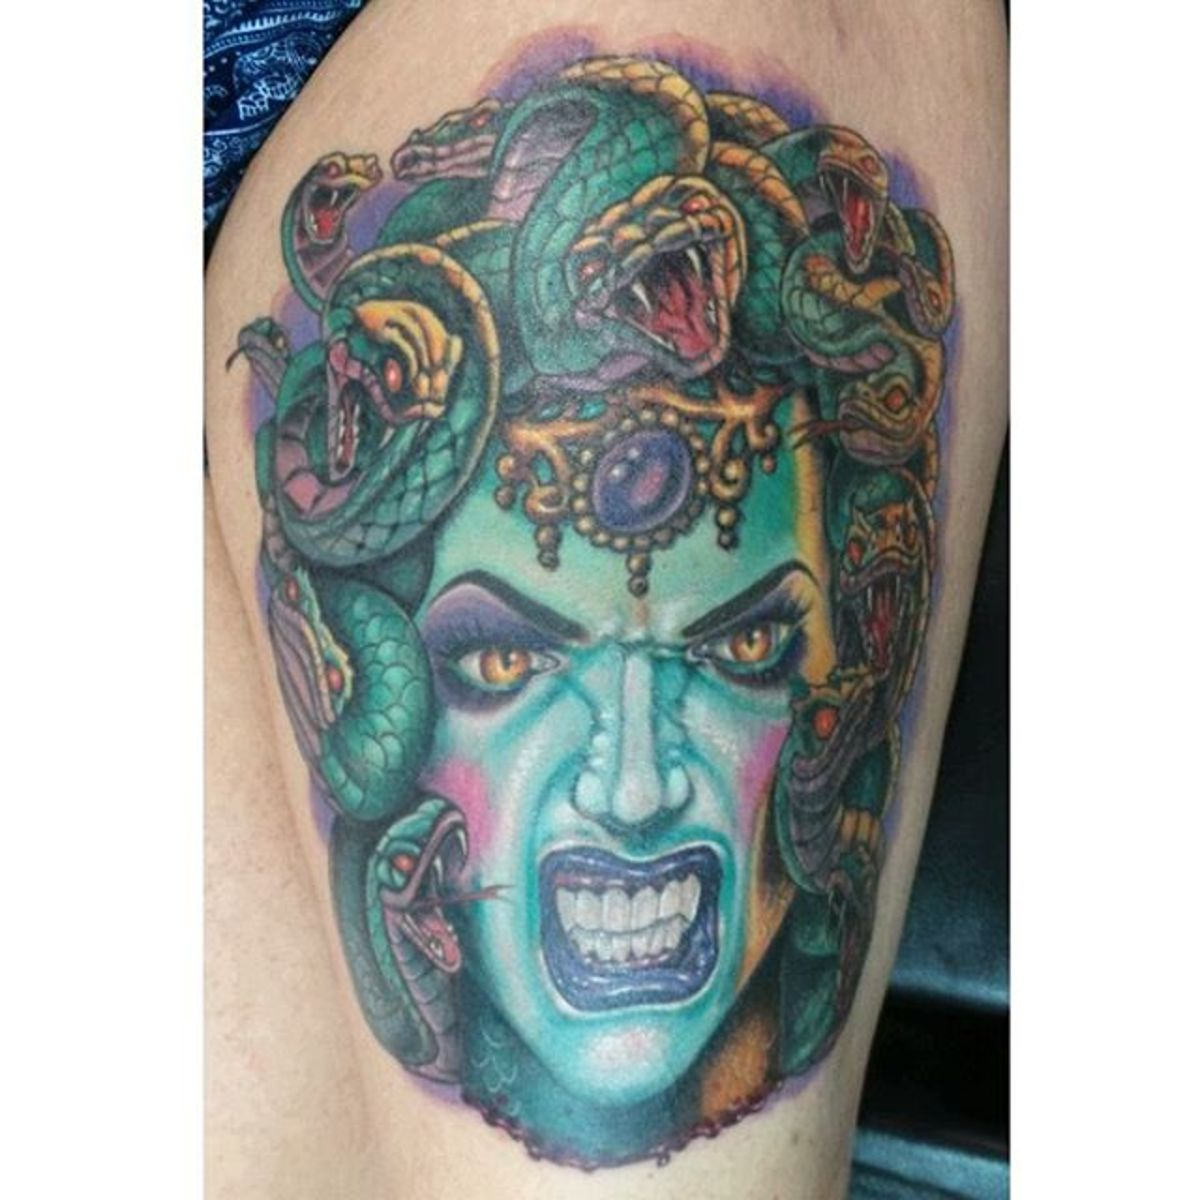 Medusa Tattoos, Designs, and Meanings